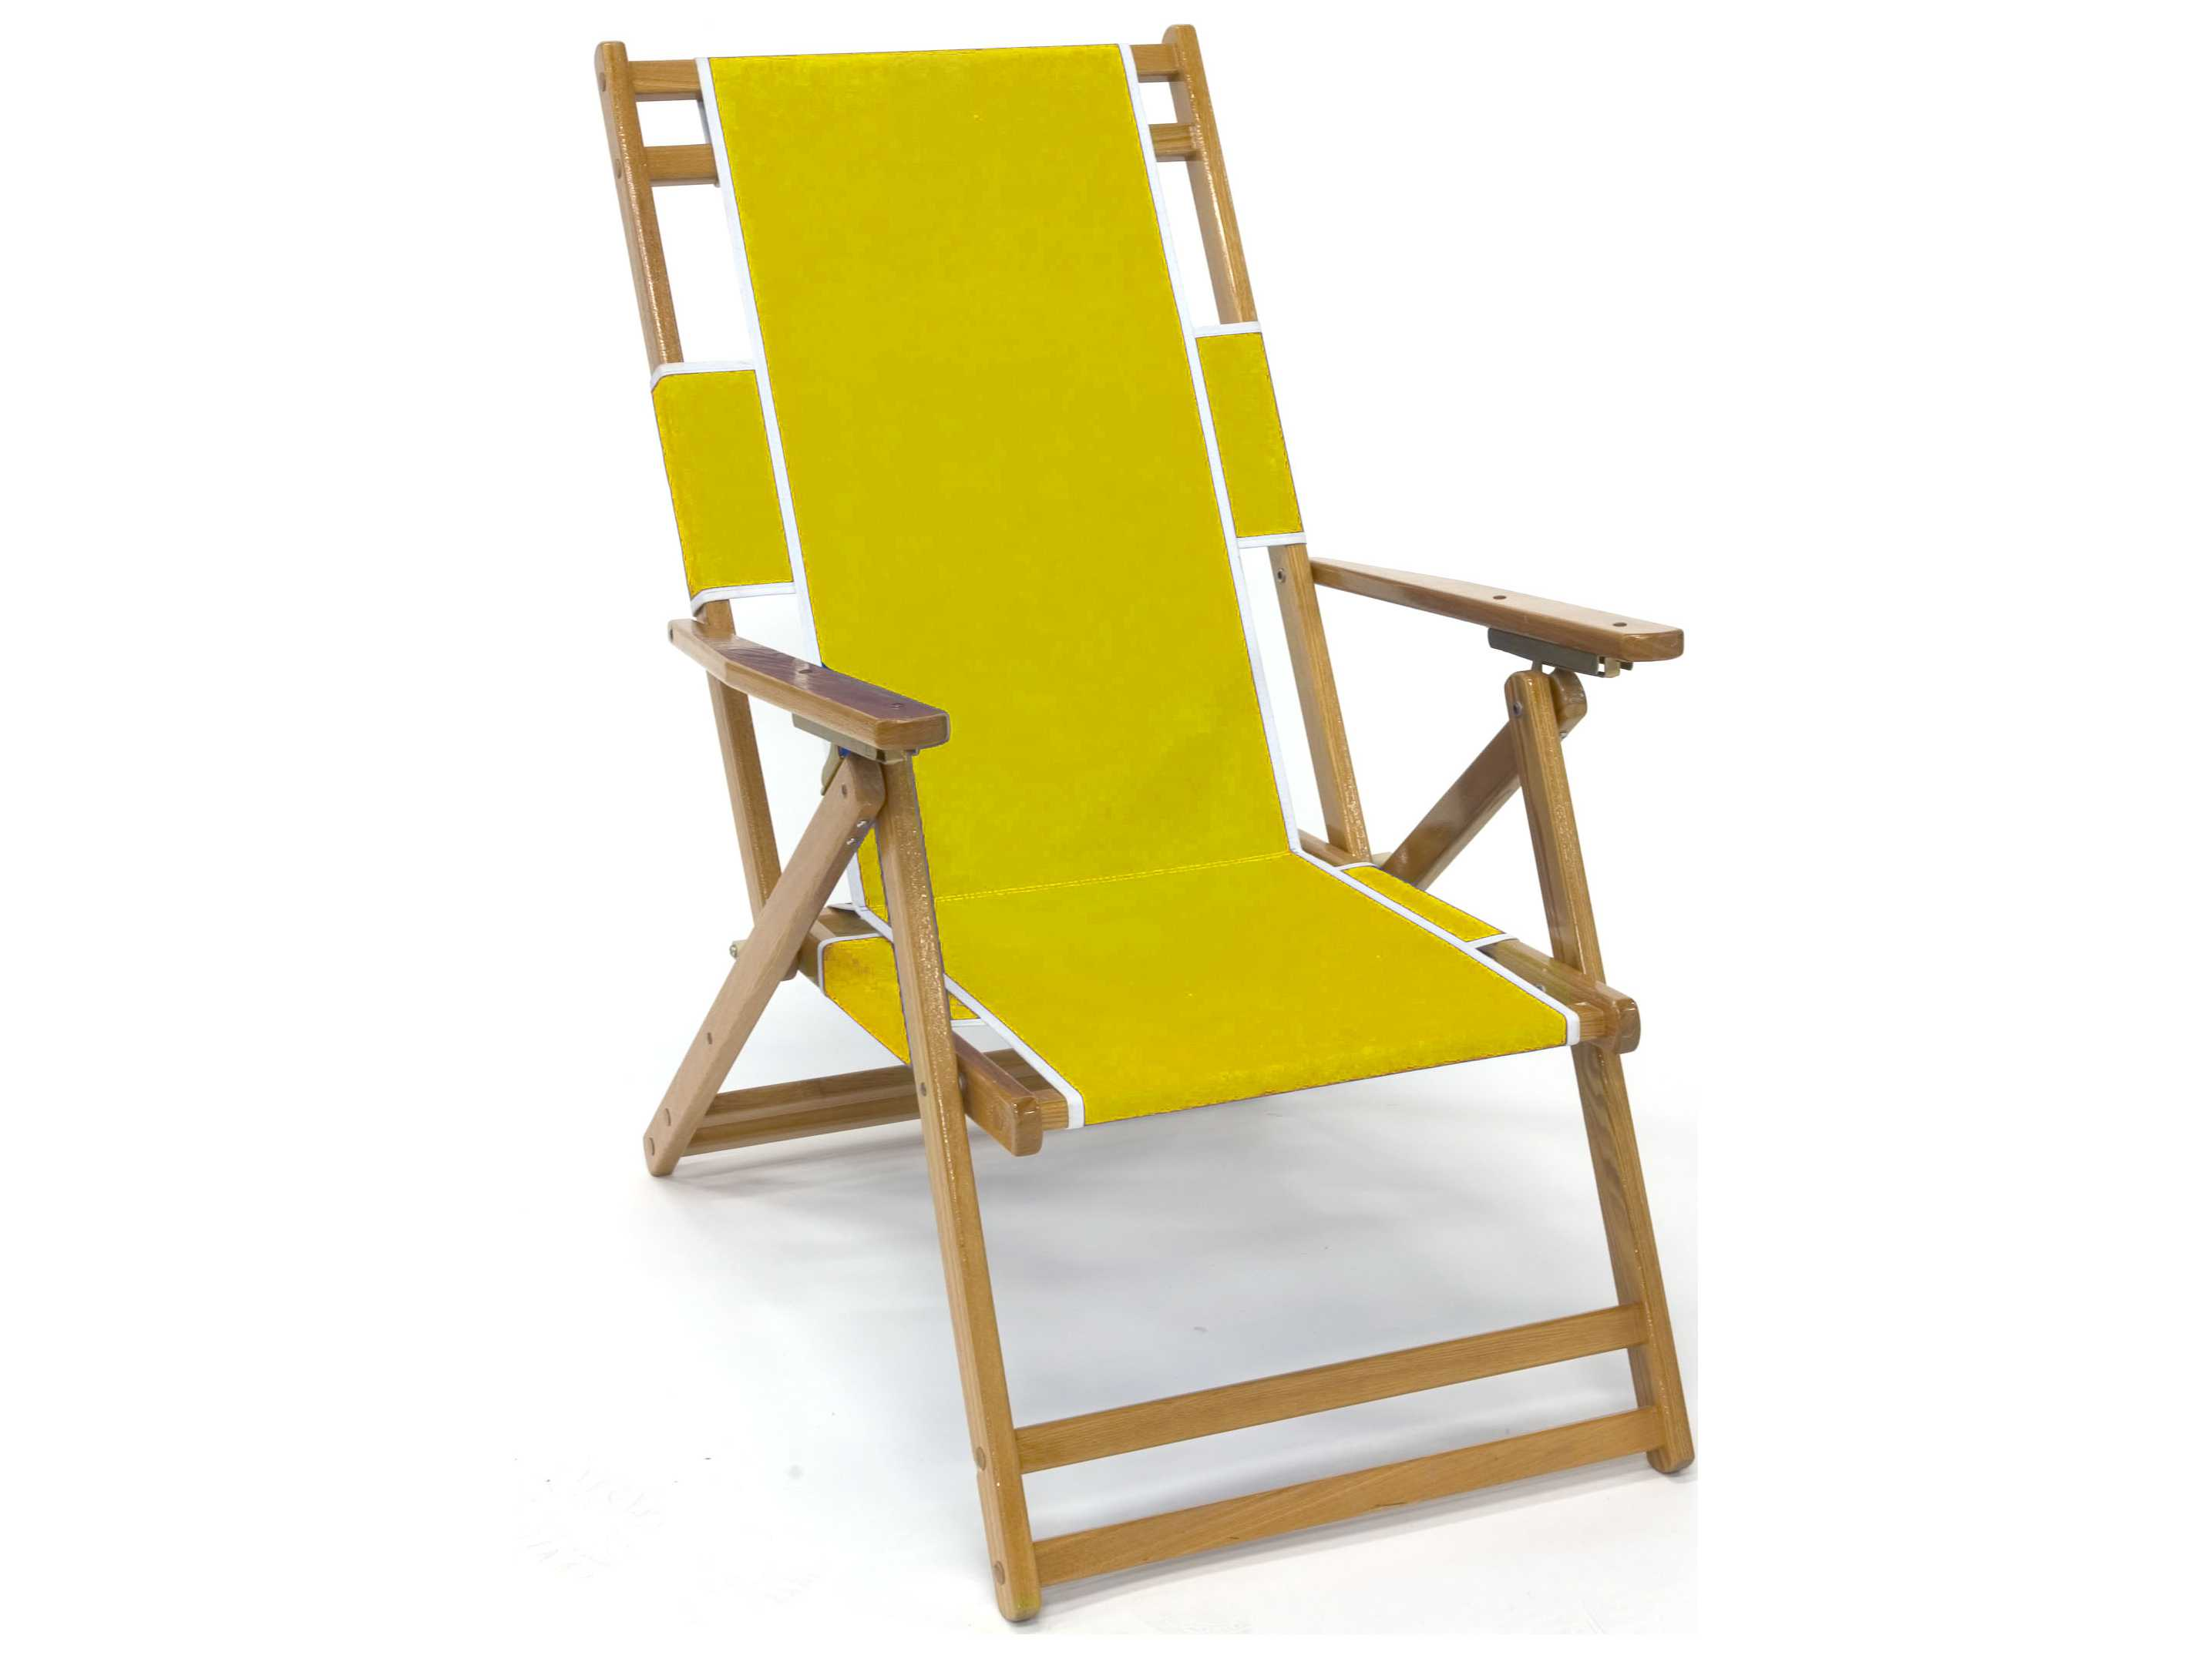 Frankford Umbrellas Wooden Beach Lounge Chair